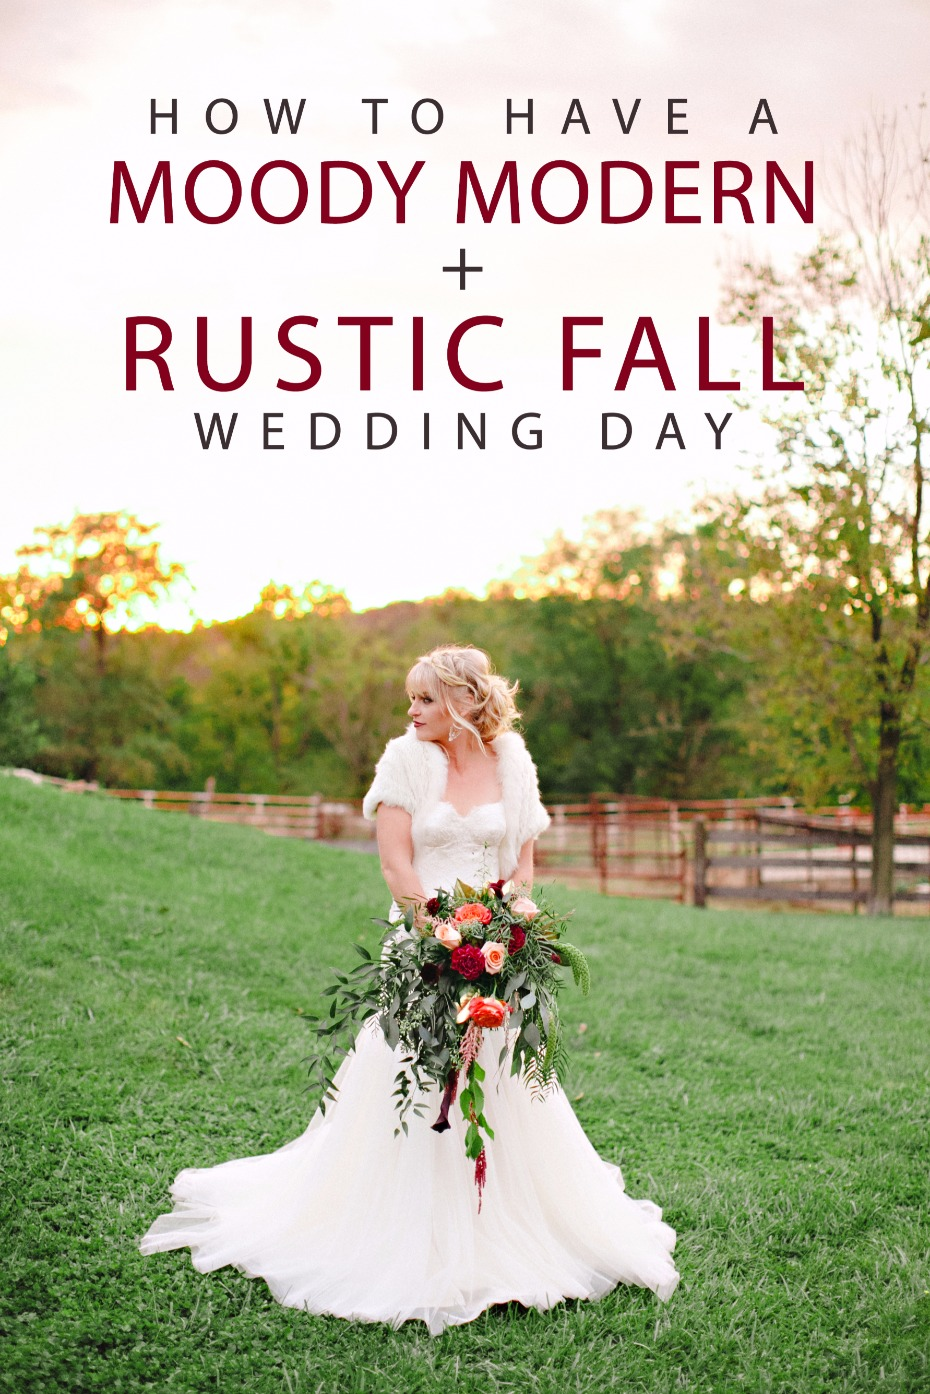 how to have a moody modern rustic fall wedding day